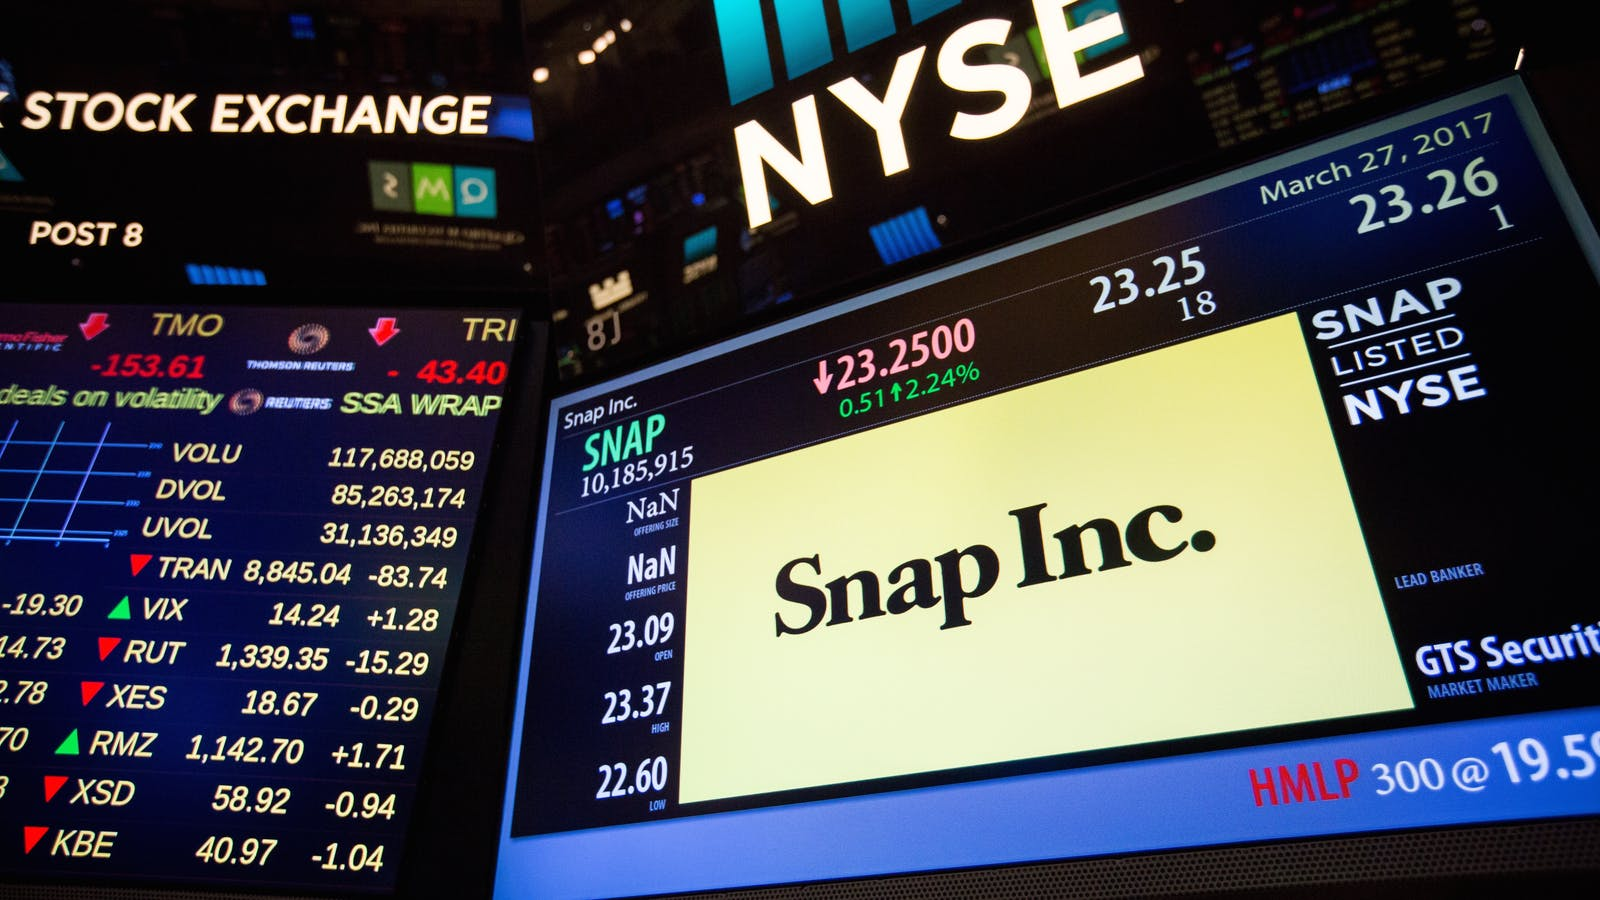 Snap stock details on display at the New York Stock Exchange last year. Photo by Bloomberg